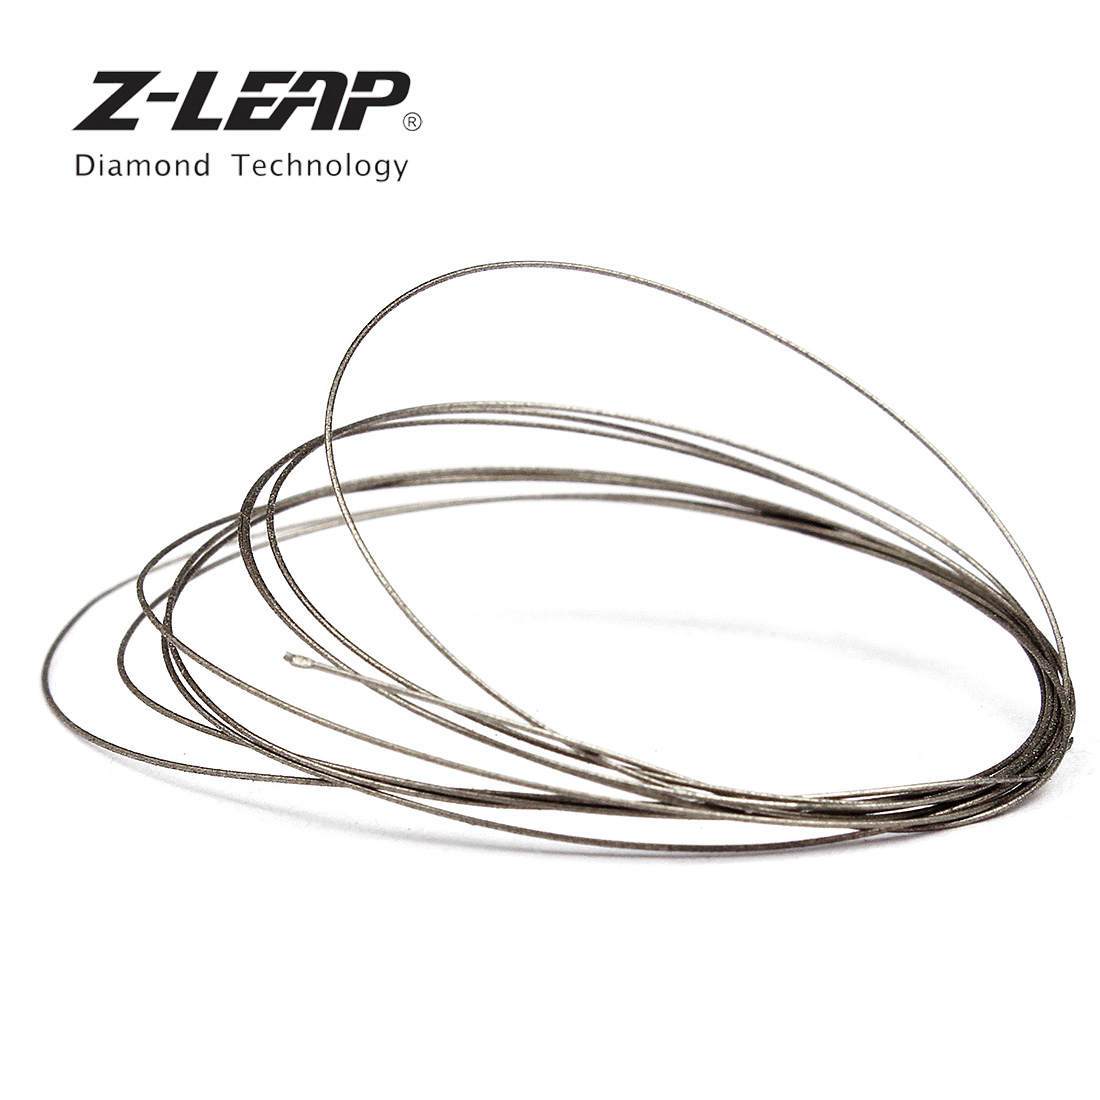 Z-LEAP 0.3/0.6 DIY Coping Saw Length 3m Diamond Wire Saw Wood Jewelry Stone Metal Electroplated Fret Saw Diamond Cutting Wire